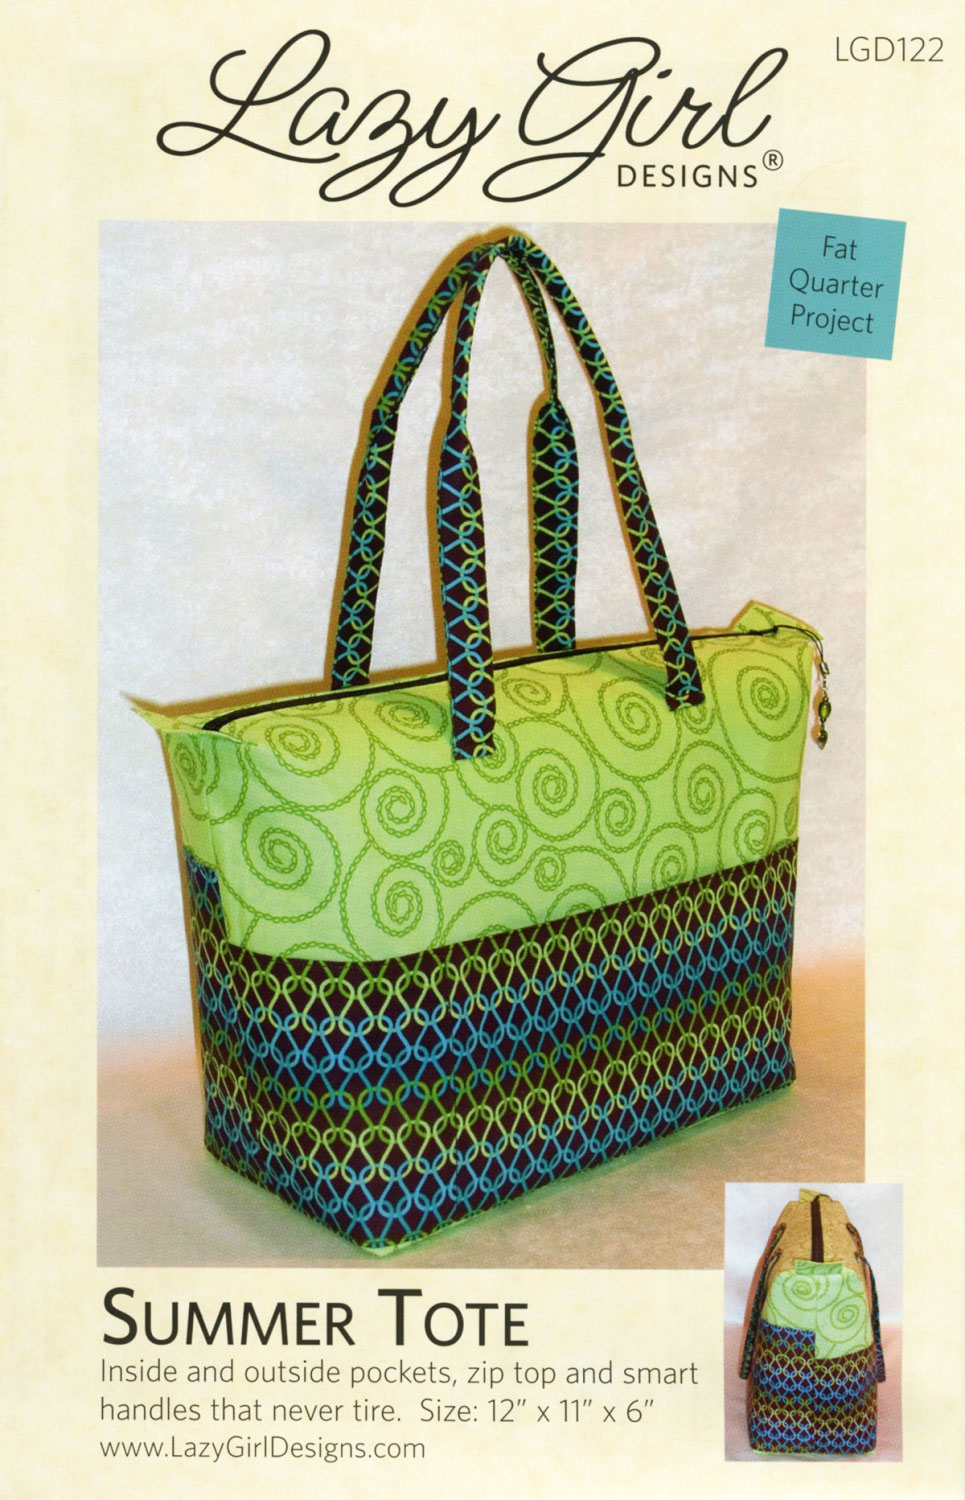 Summer Tote pattern from Lazy Girl Designs